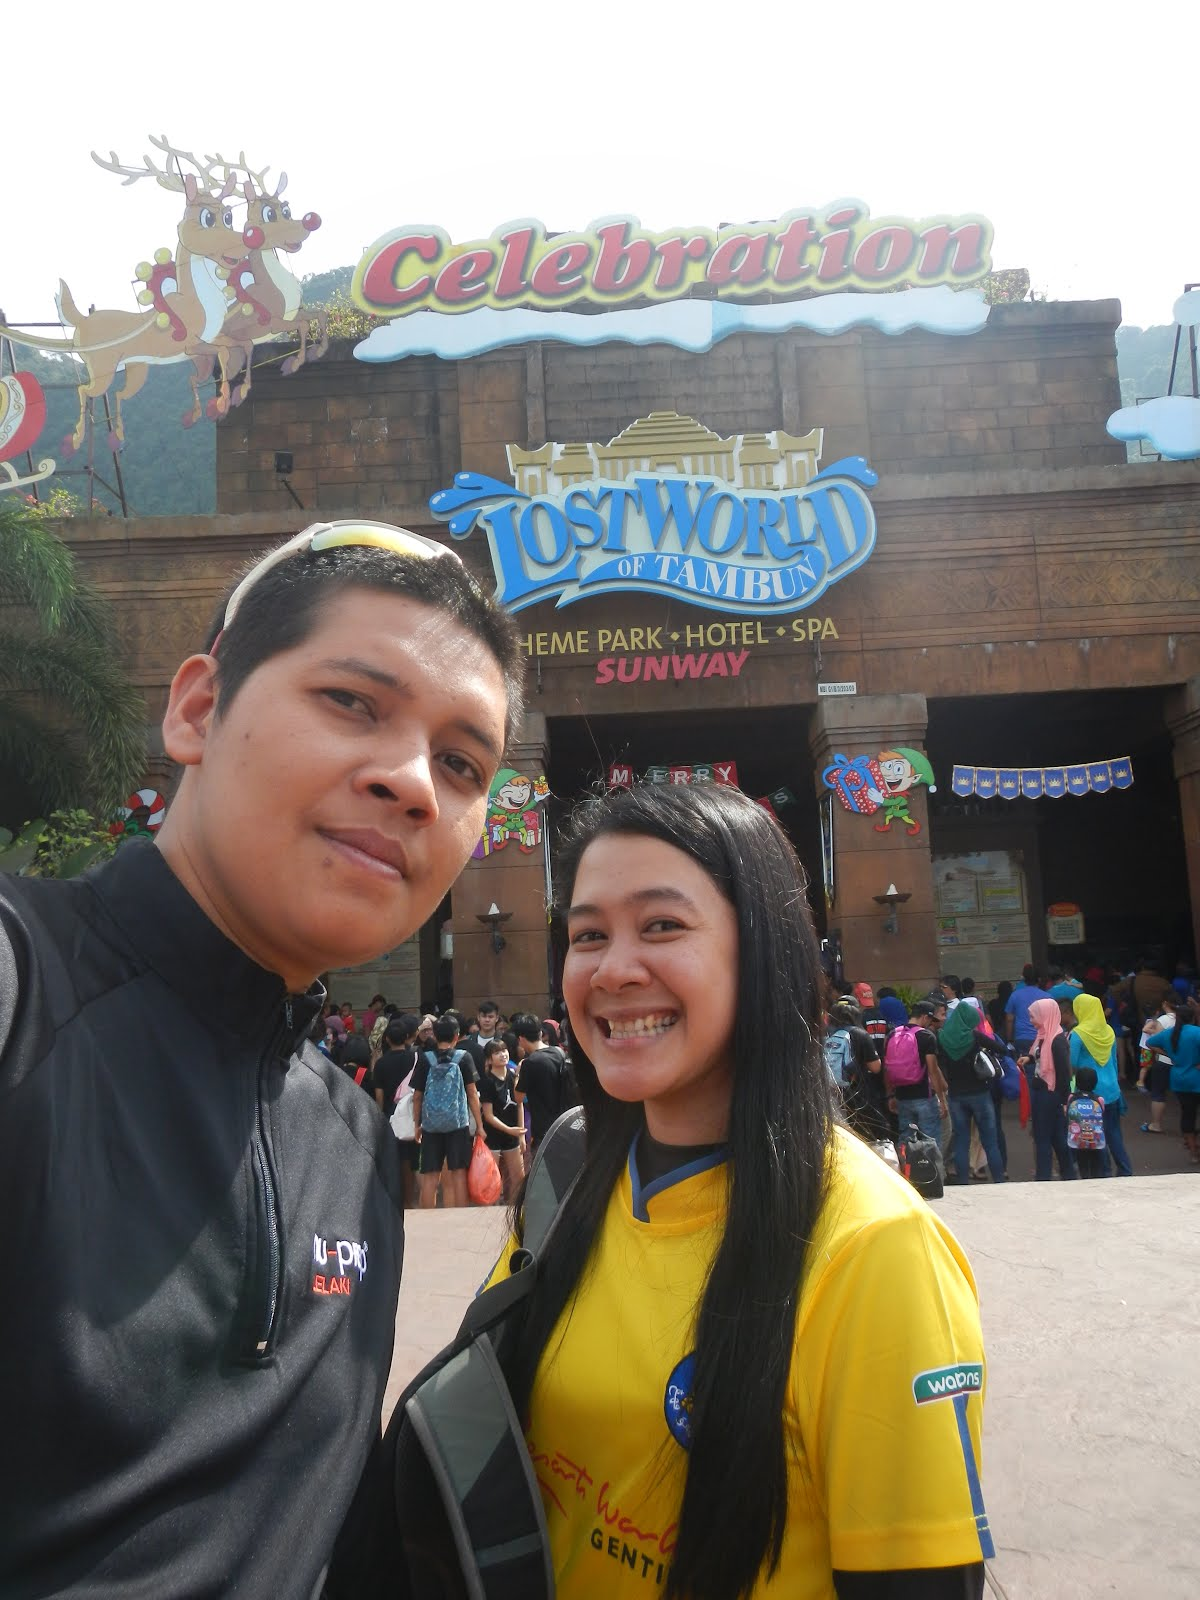 ♥Lost World of Tambun 2015♥